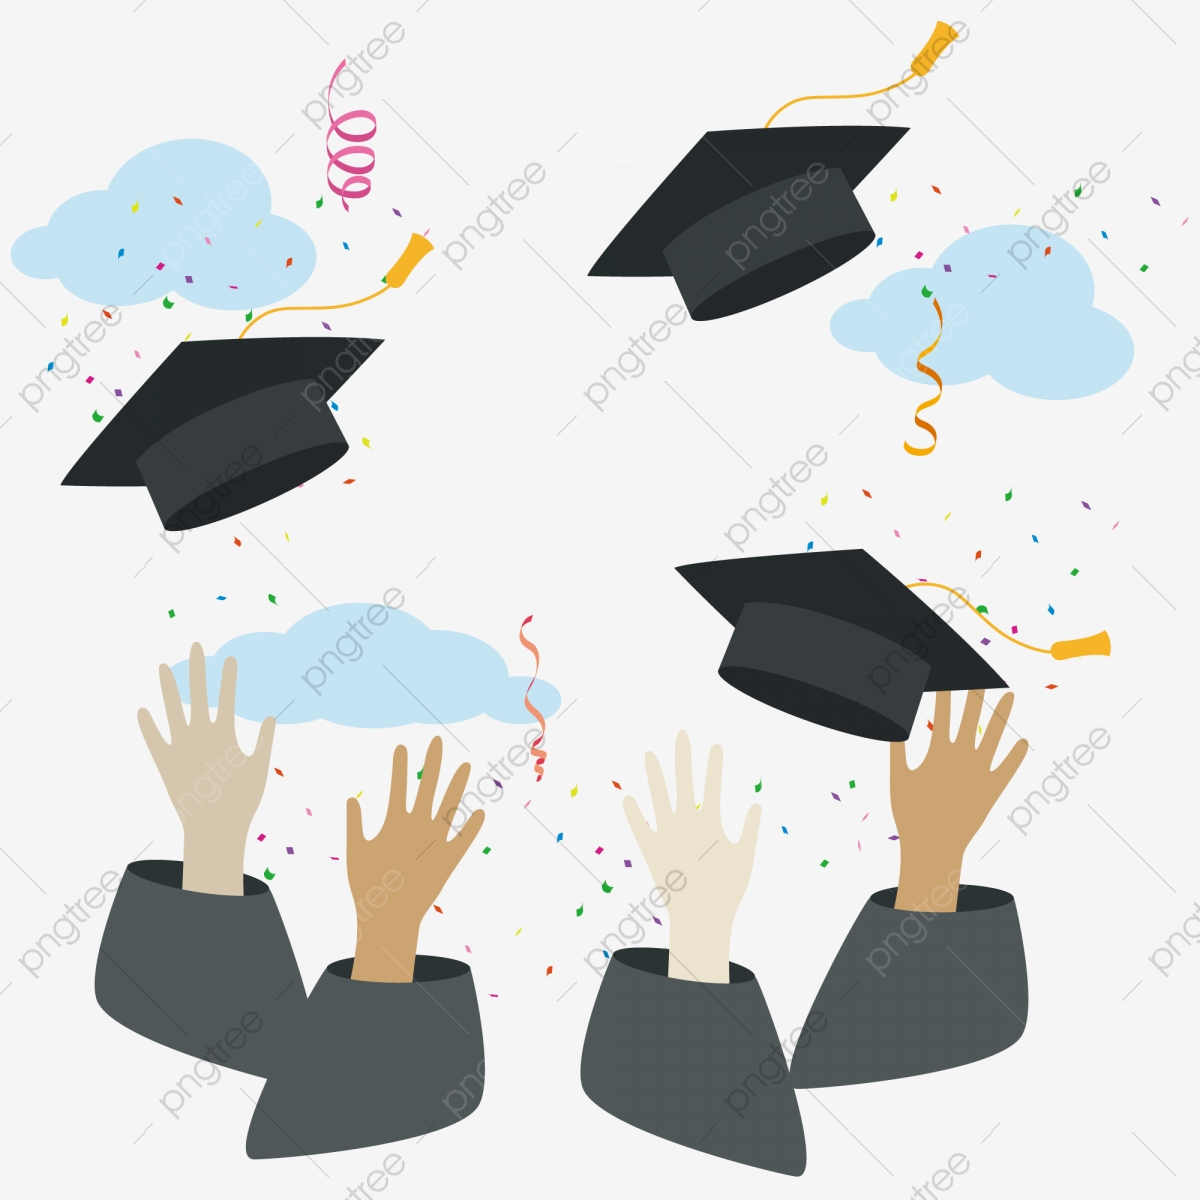 Future clipart graduation. Student college entrance examination